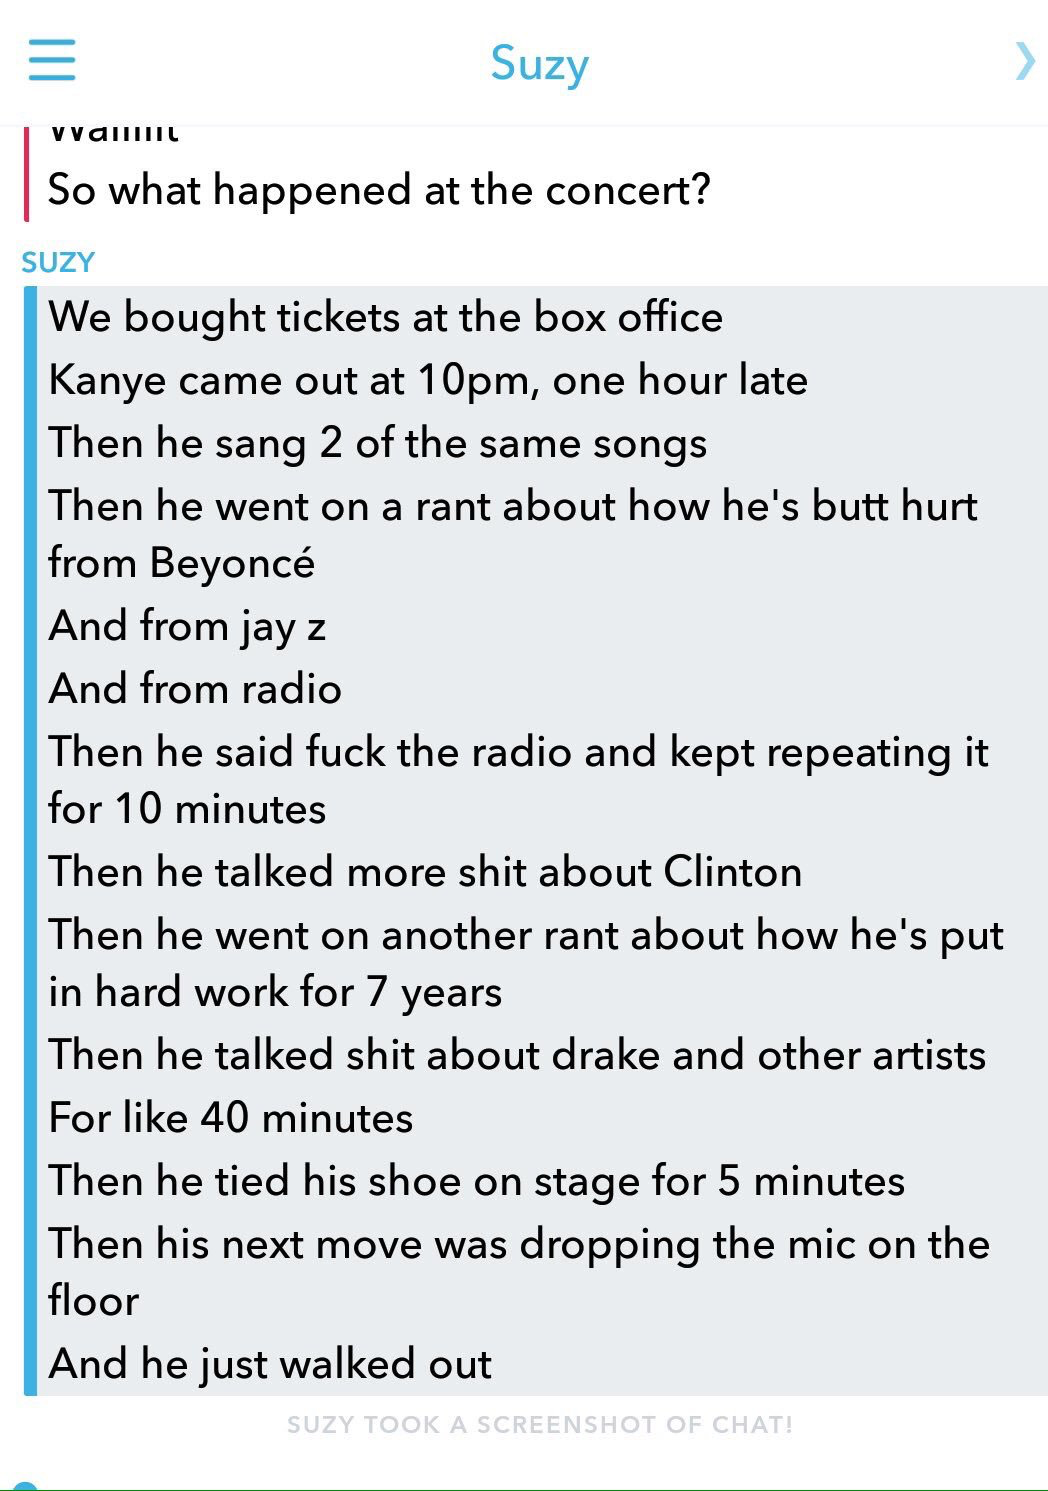 #KanyeIsOverParty